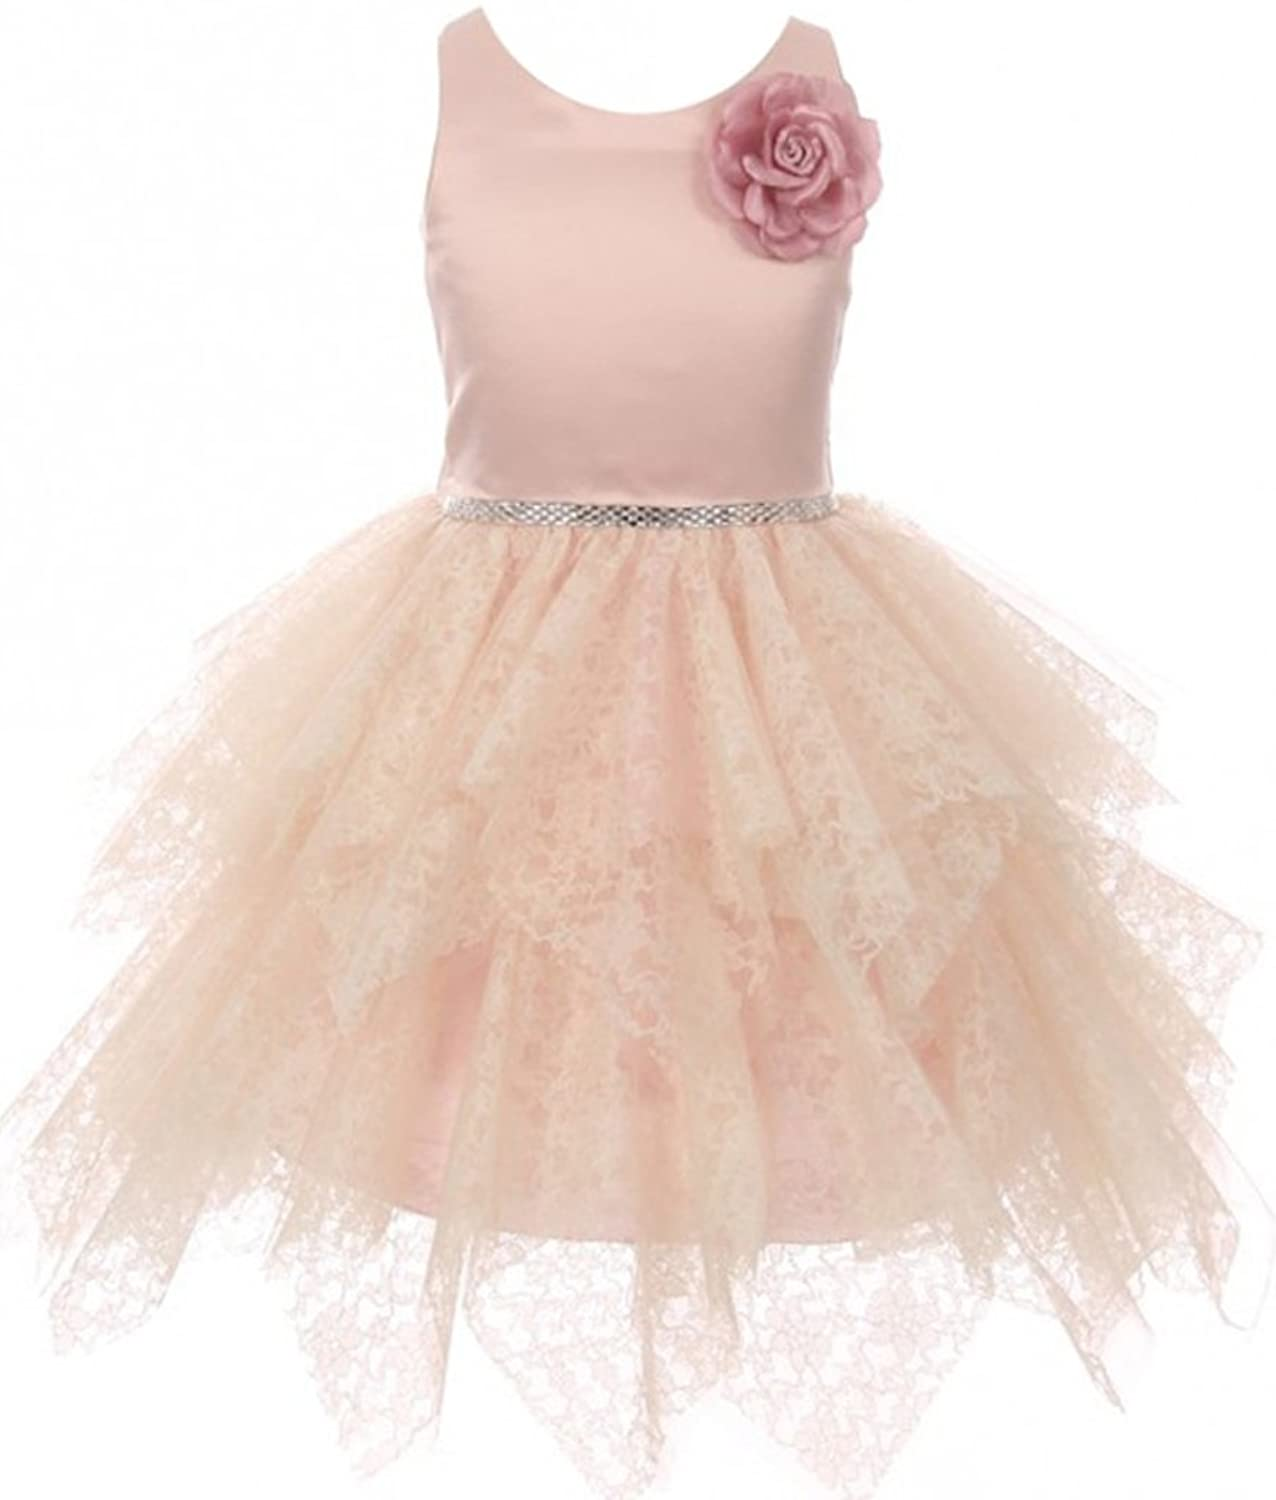 98db8dd46 BNY Corner Flower Girl Dress Satin Bodice Lozenge Cut Tiered Tulle Lace  Dress